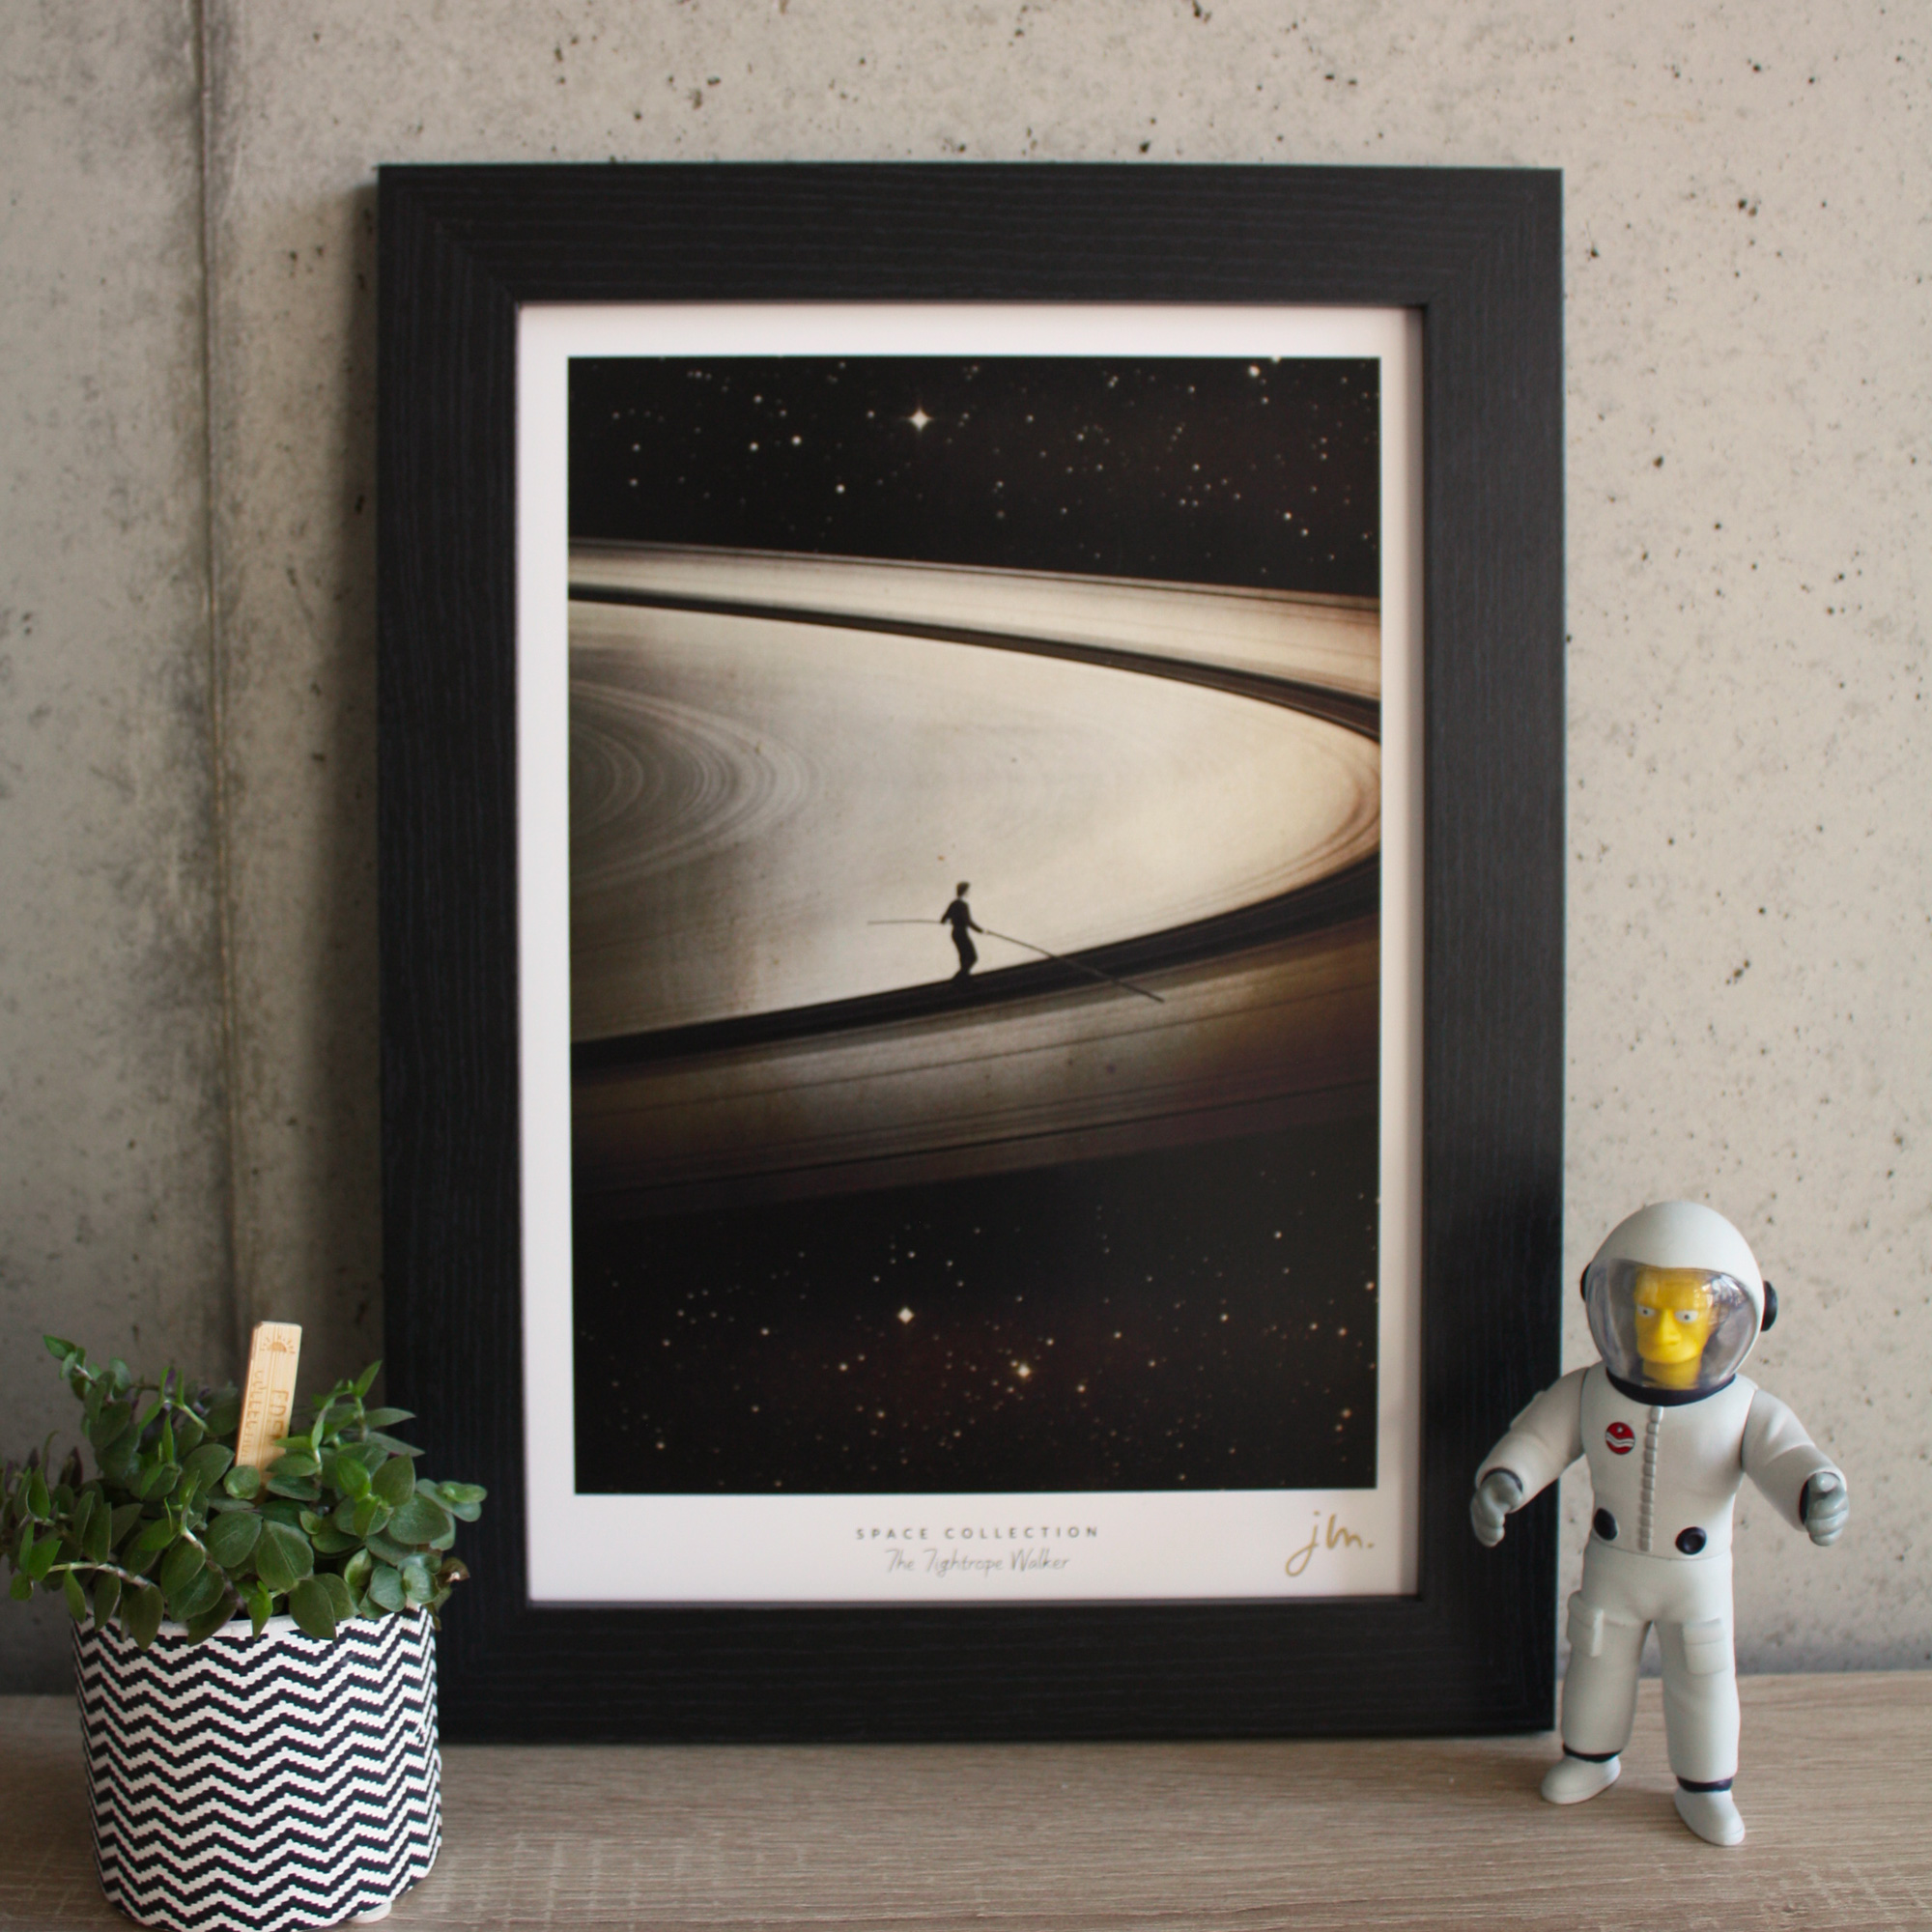 Affiche Fine Art The Tightrope Walker - Edition Silver